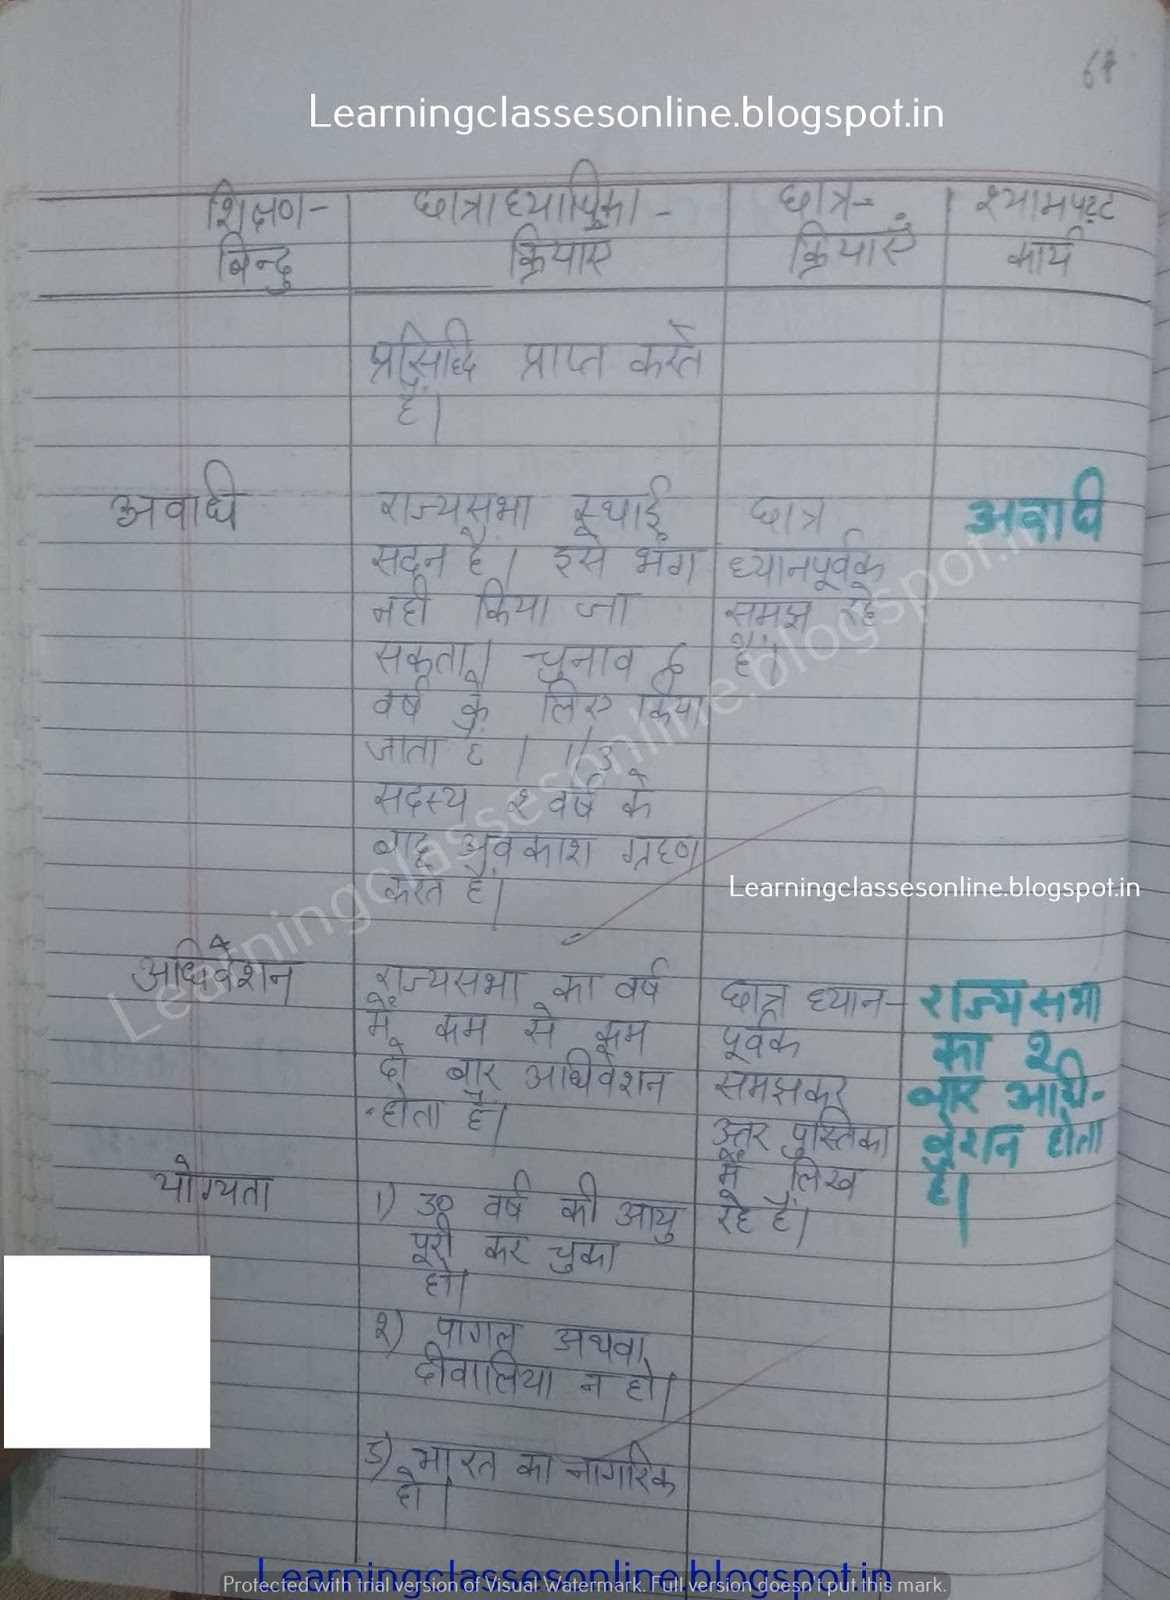 lesson plan for class 10 social science cbse,